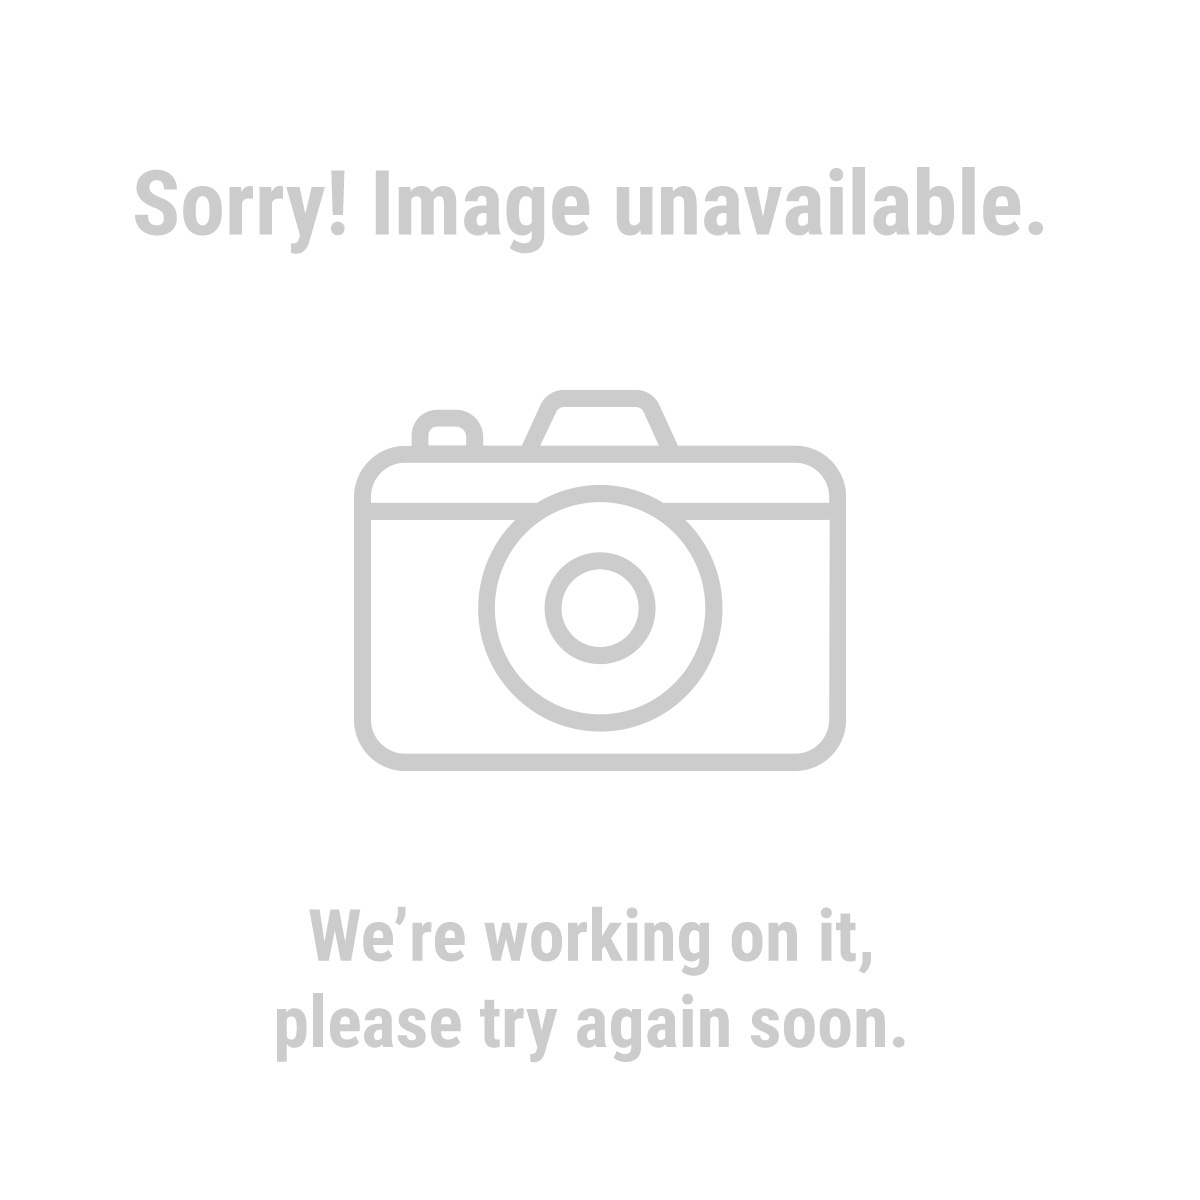 Pittsburgh® 43553 4 Piece Tongue and Groove Joint Pliers Set